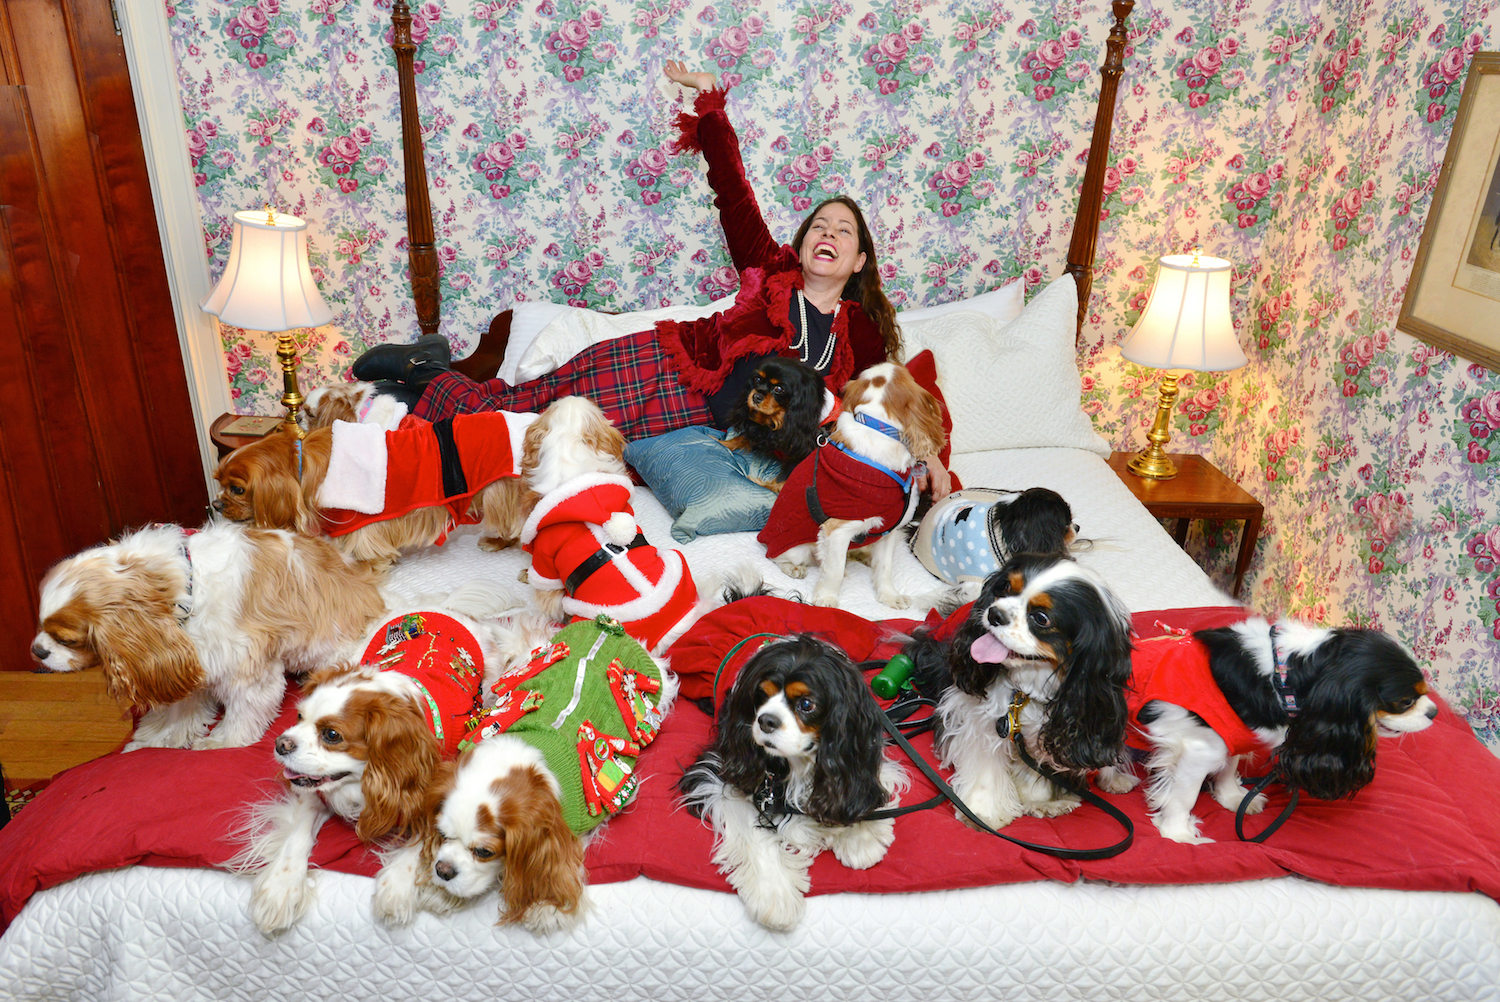 melissa in bed with dogs leashes.jpg